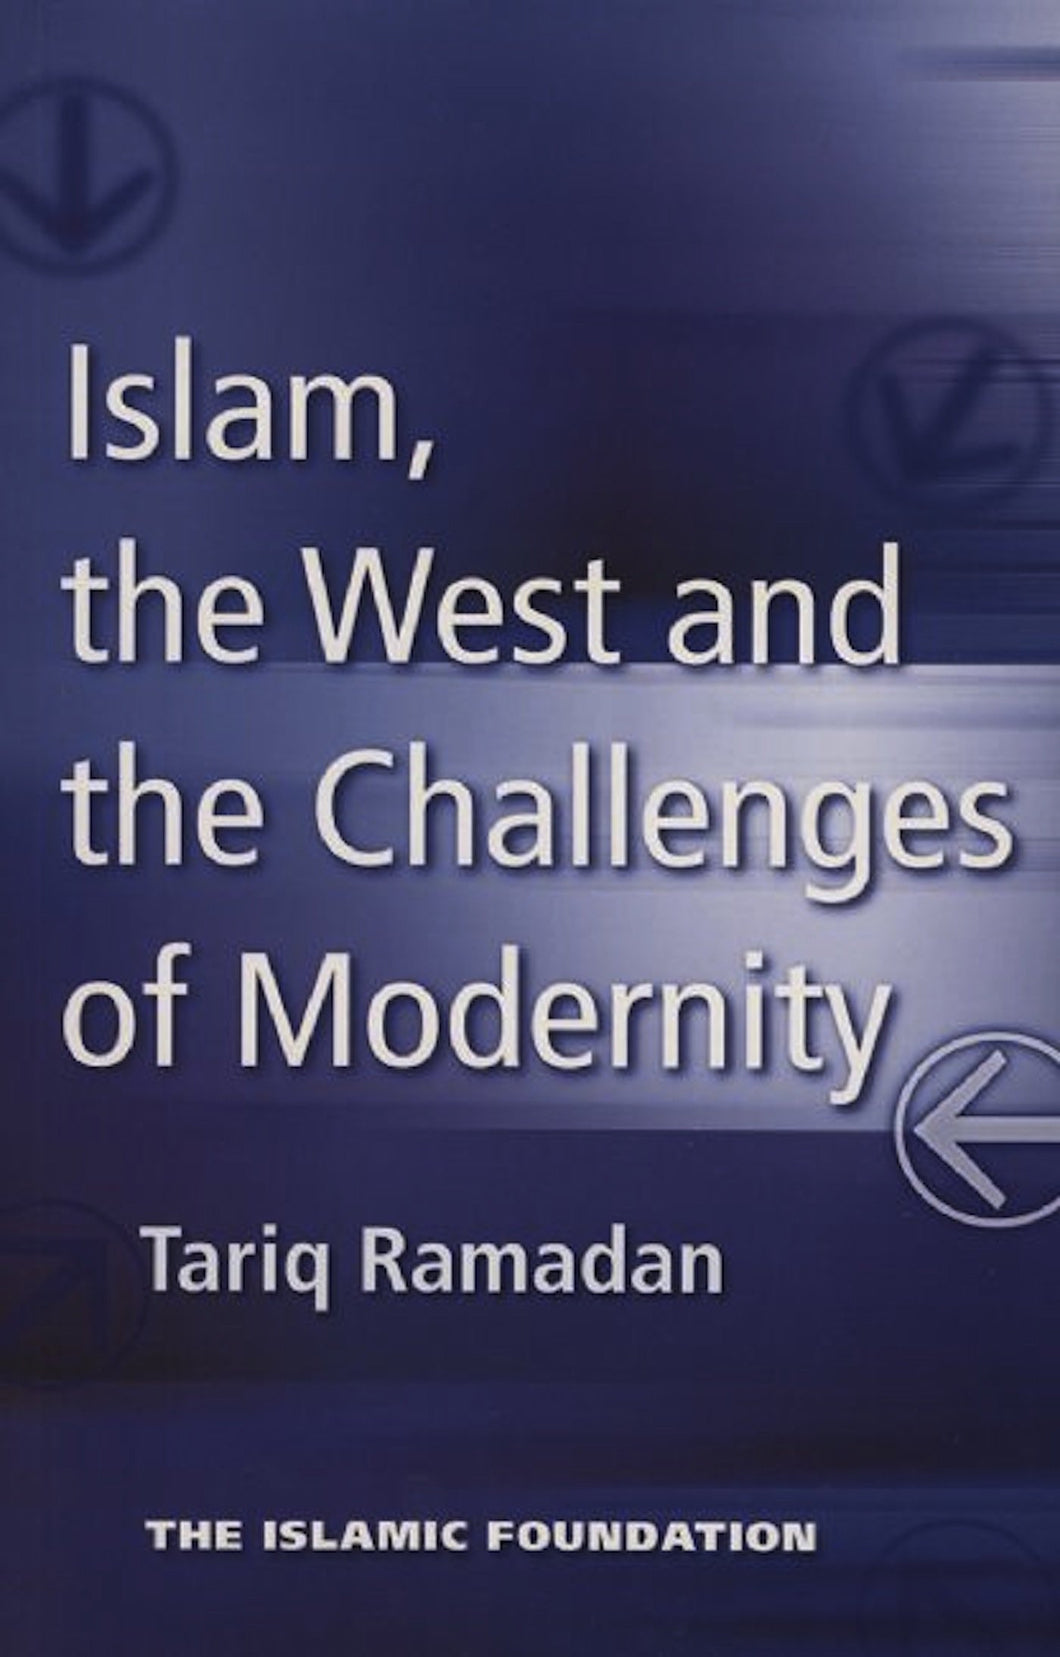 Islam, the West and the Challenges of Modernity by Tariq Ramadan - Baitul Hikmah